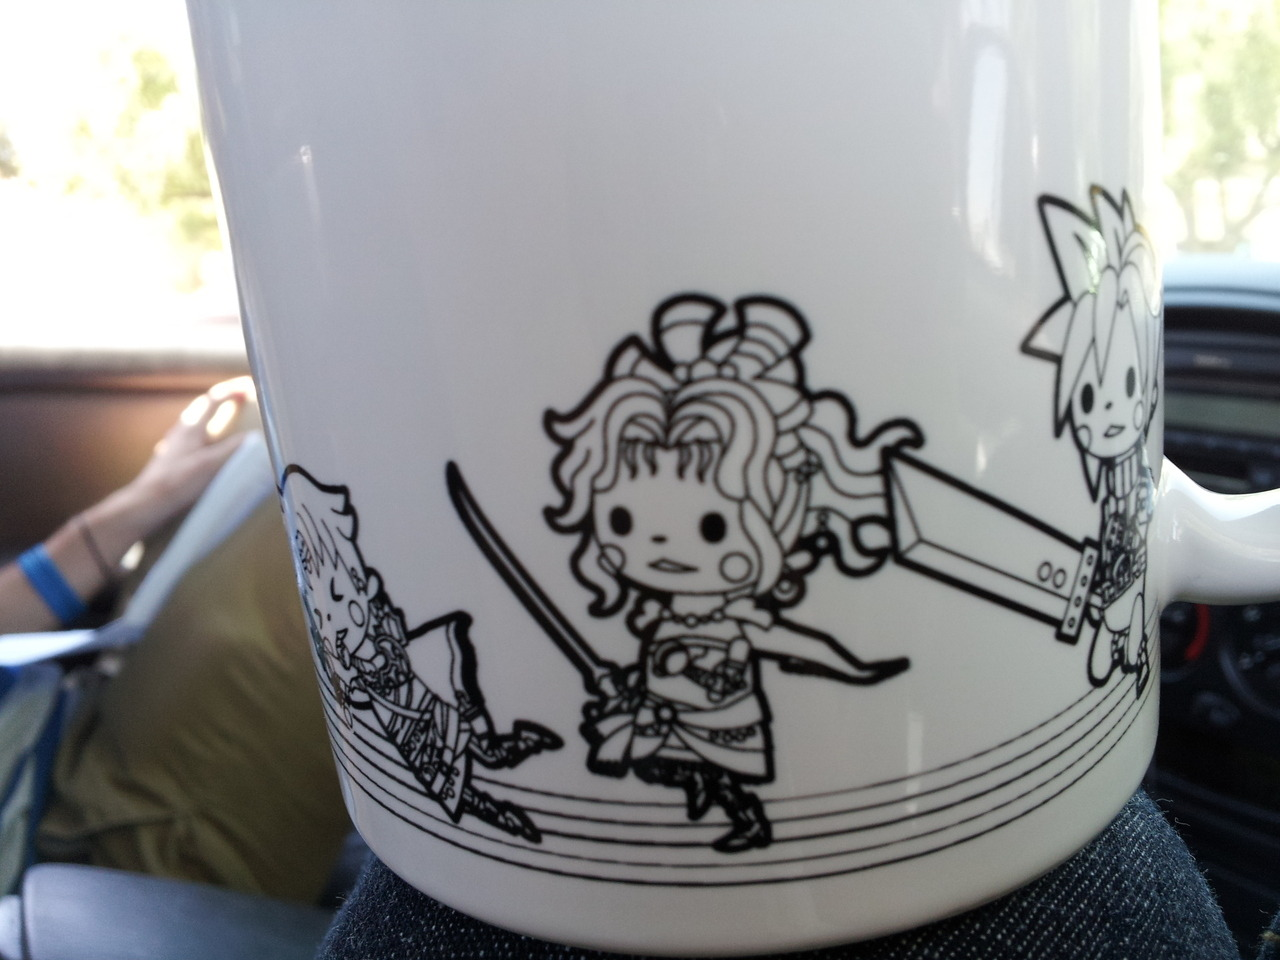 Theatrhythm: Final Fantasy releases today, and while I'm sure many of you have already got your preordered copies on the way, what about your Theatrhythm coffee mug? If you act quick, you can get one cheap at Amazon for $14.99. Various import shops also have them in stock. And for those wondering about our thoughts on it — the game, not the mug, which I'm sure is wonderful at delivering drinks to your mouth — our own JC Fletcher played through Theatrhythm and posted his review here. Buy: Theatrhythm Final Fantasy (free stylus!) Find: Nintendo DS/3DS release dates, discounts, & more See also: More Theatrhythm Final Fantasy news, media[Image via Meggykei]